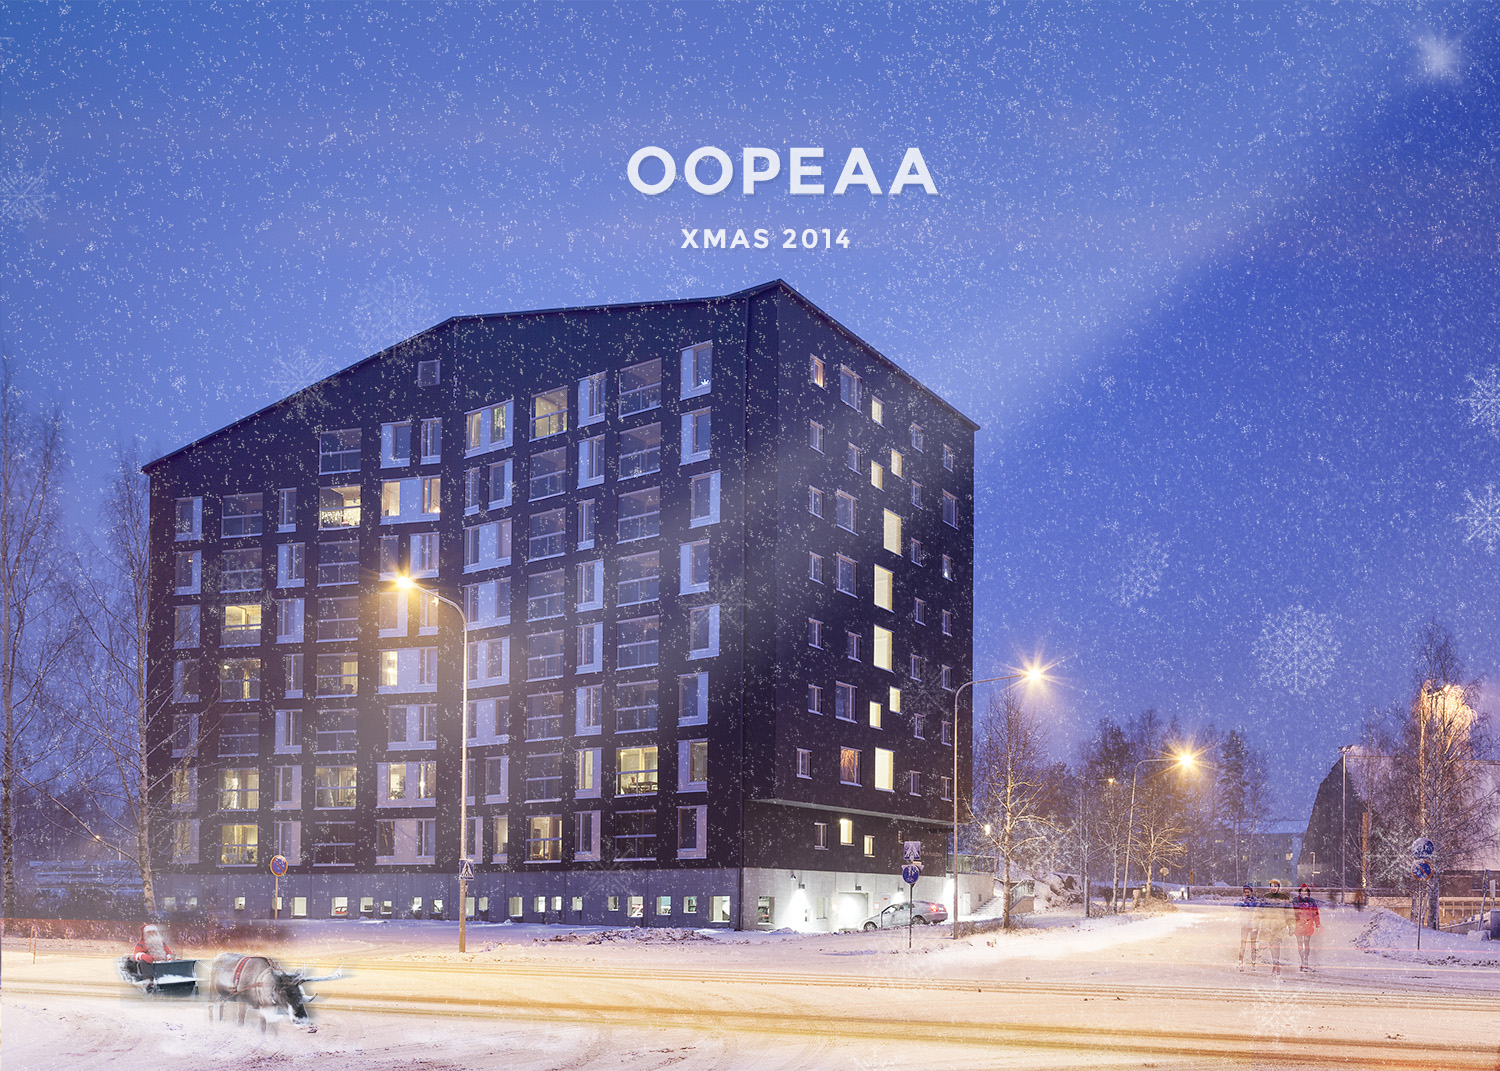 2014_OOPEAA Christmas card_light_website